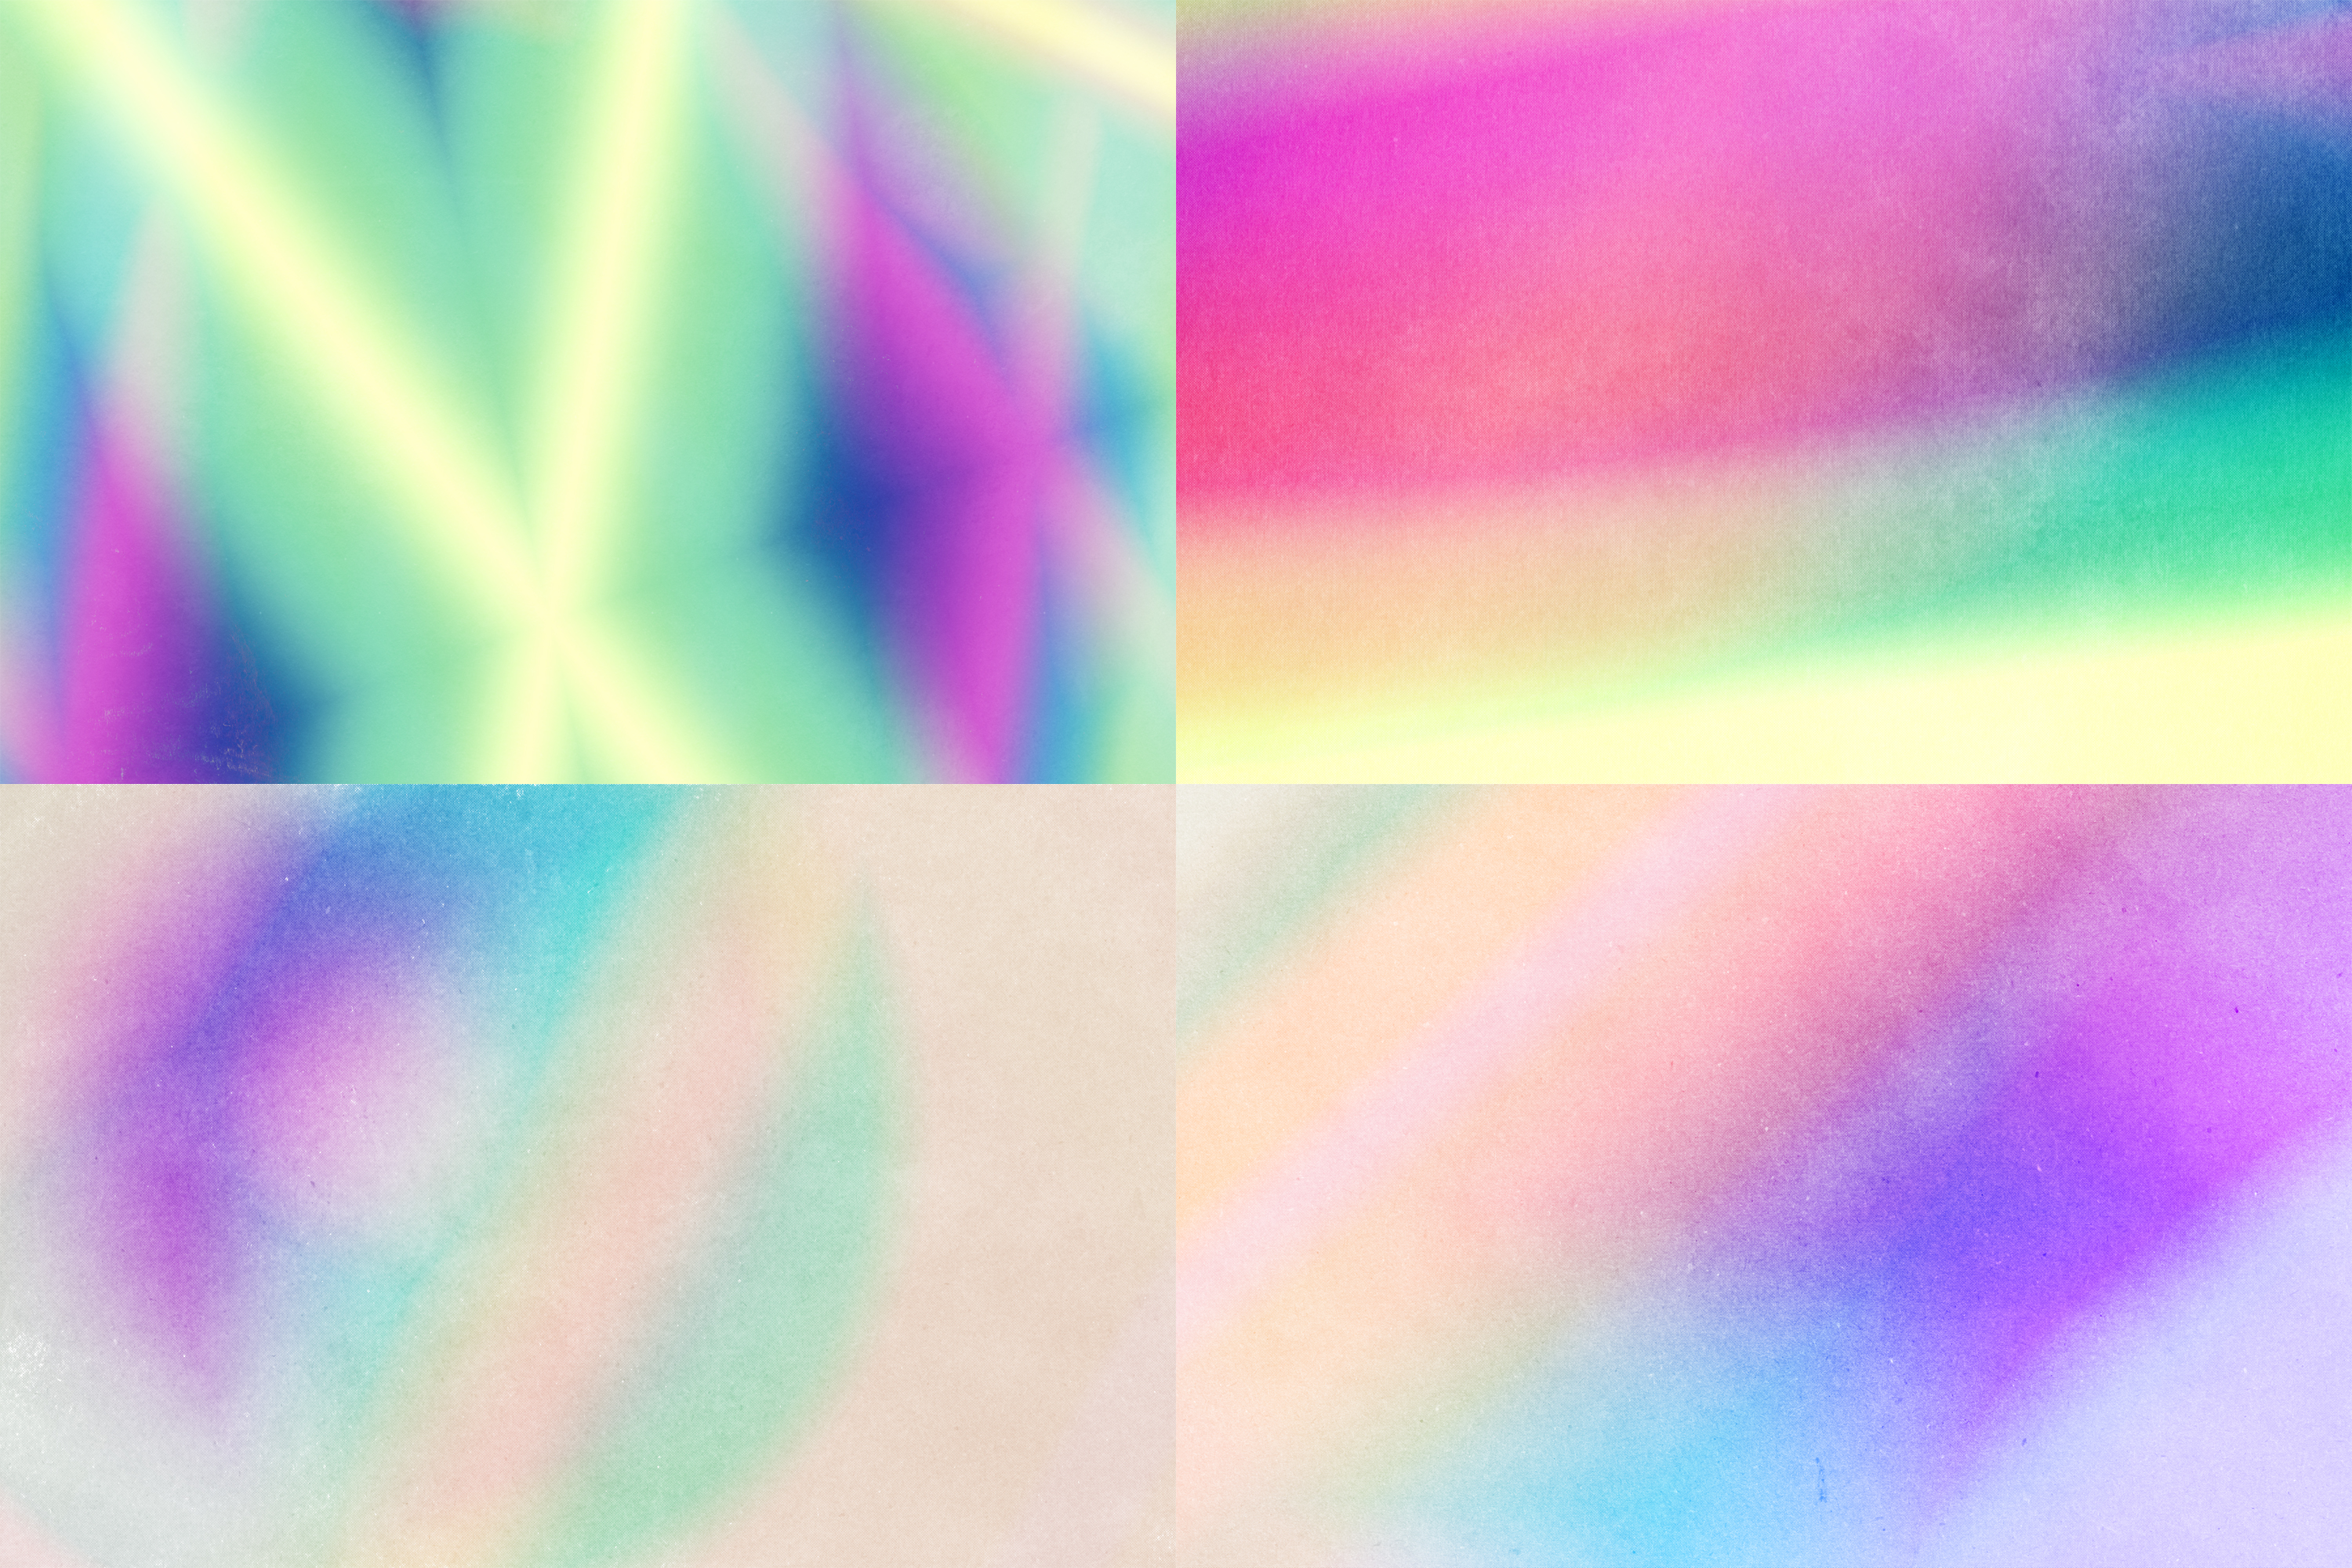 Faded - 15 Abstract Backgrounds Pack example image 5